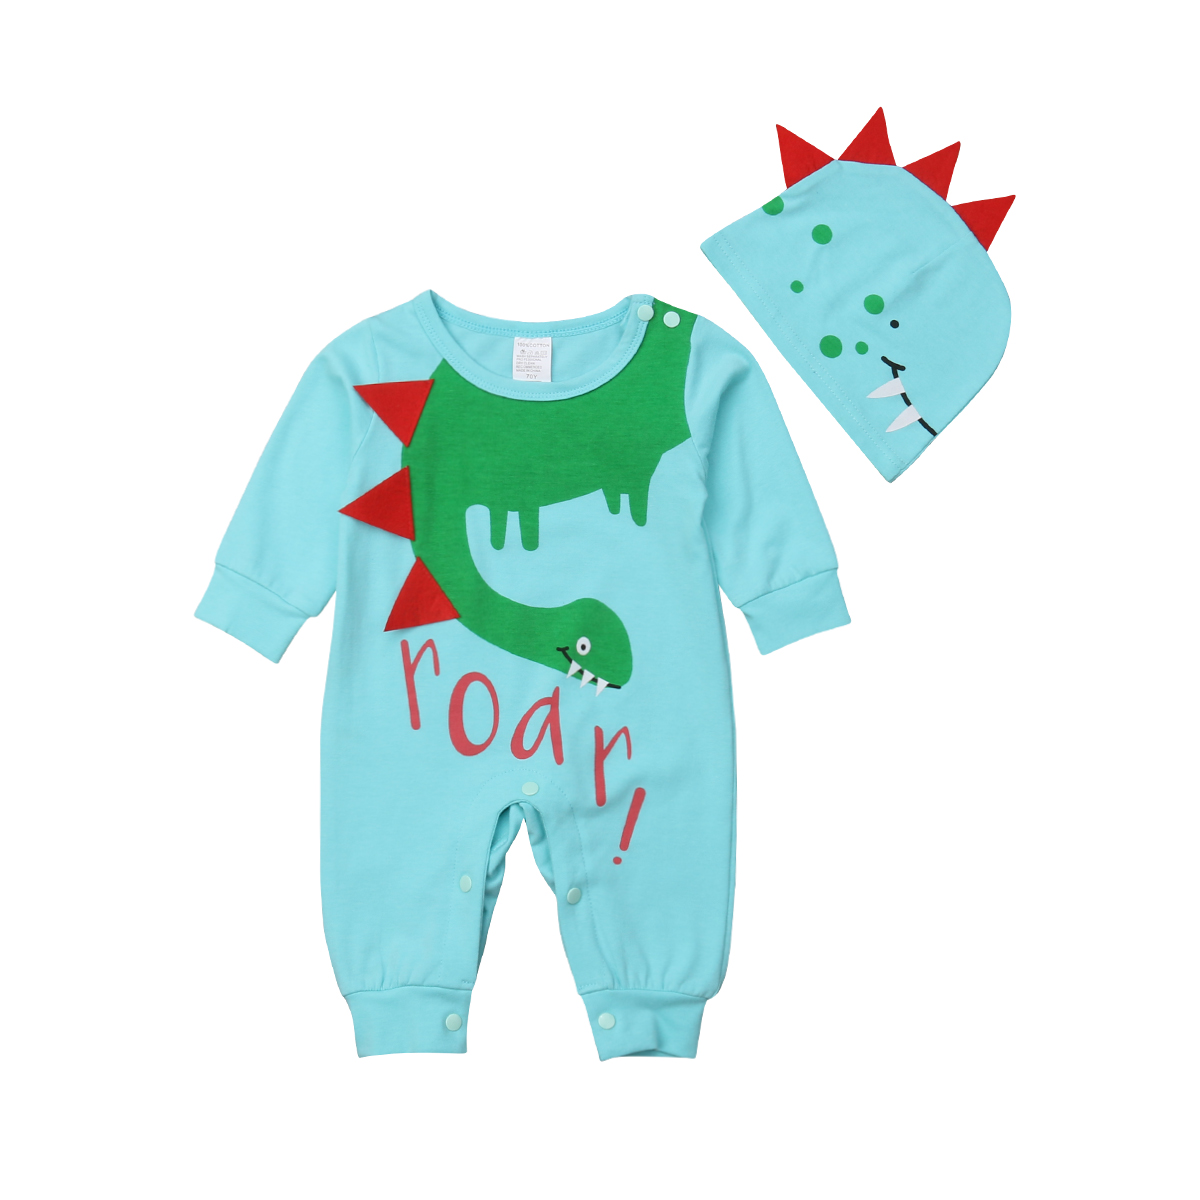 07f71a098 Girls' Clothing (Newborn-5T) Baby & Toddler Clothing US Stock Lovely Baby  Girls Cartoon Romper Jumpsuit Backless Dinosaur ...